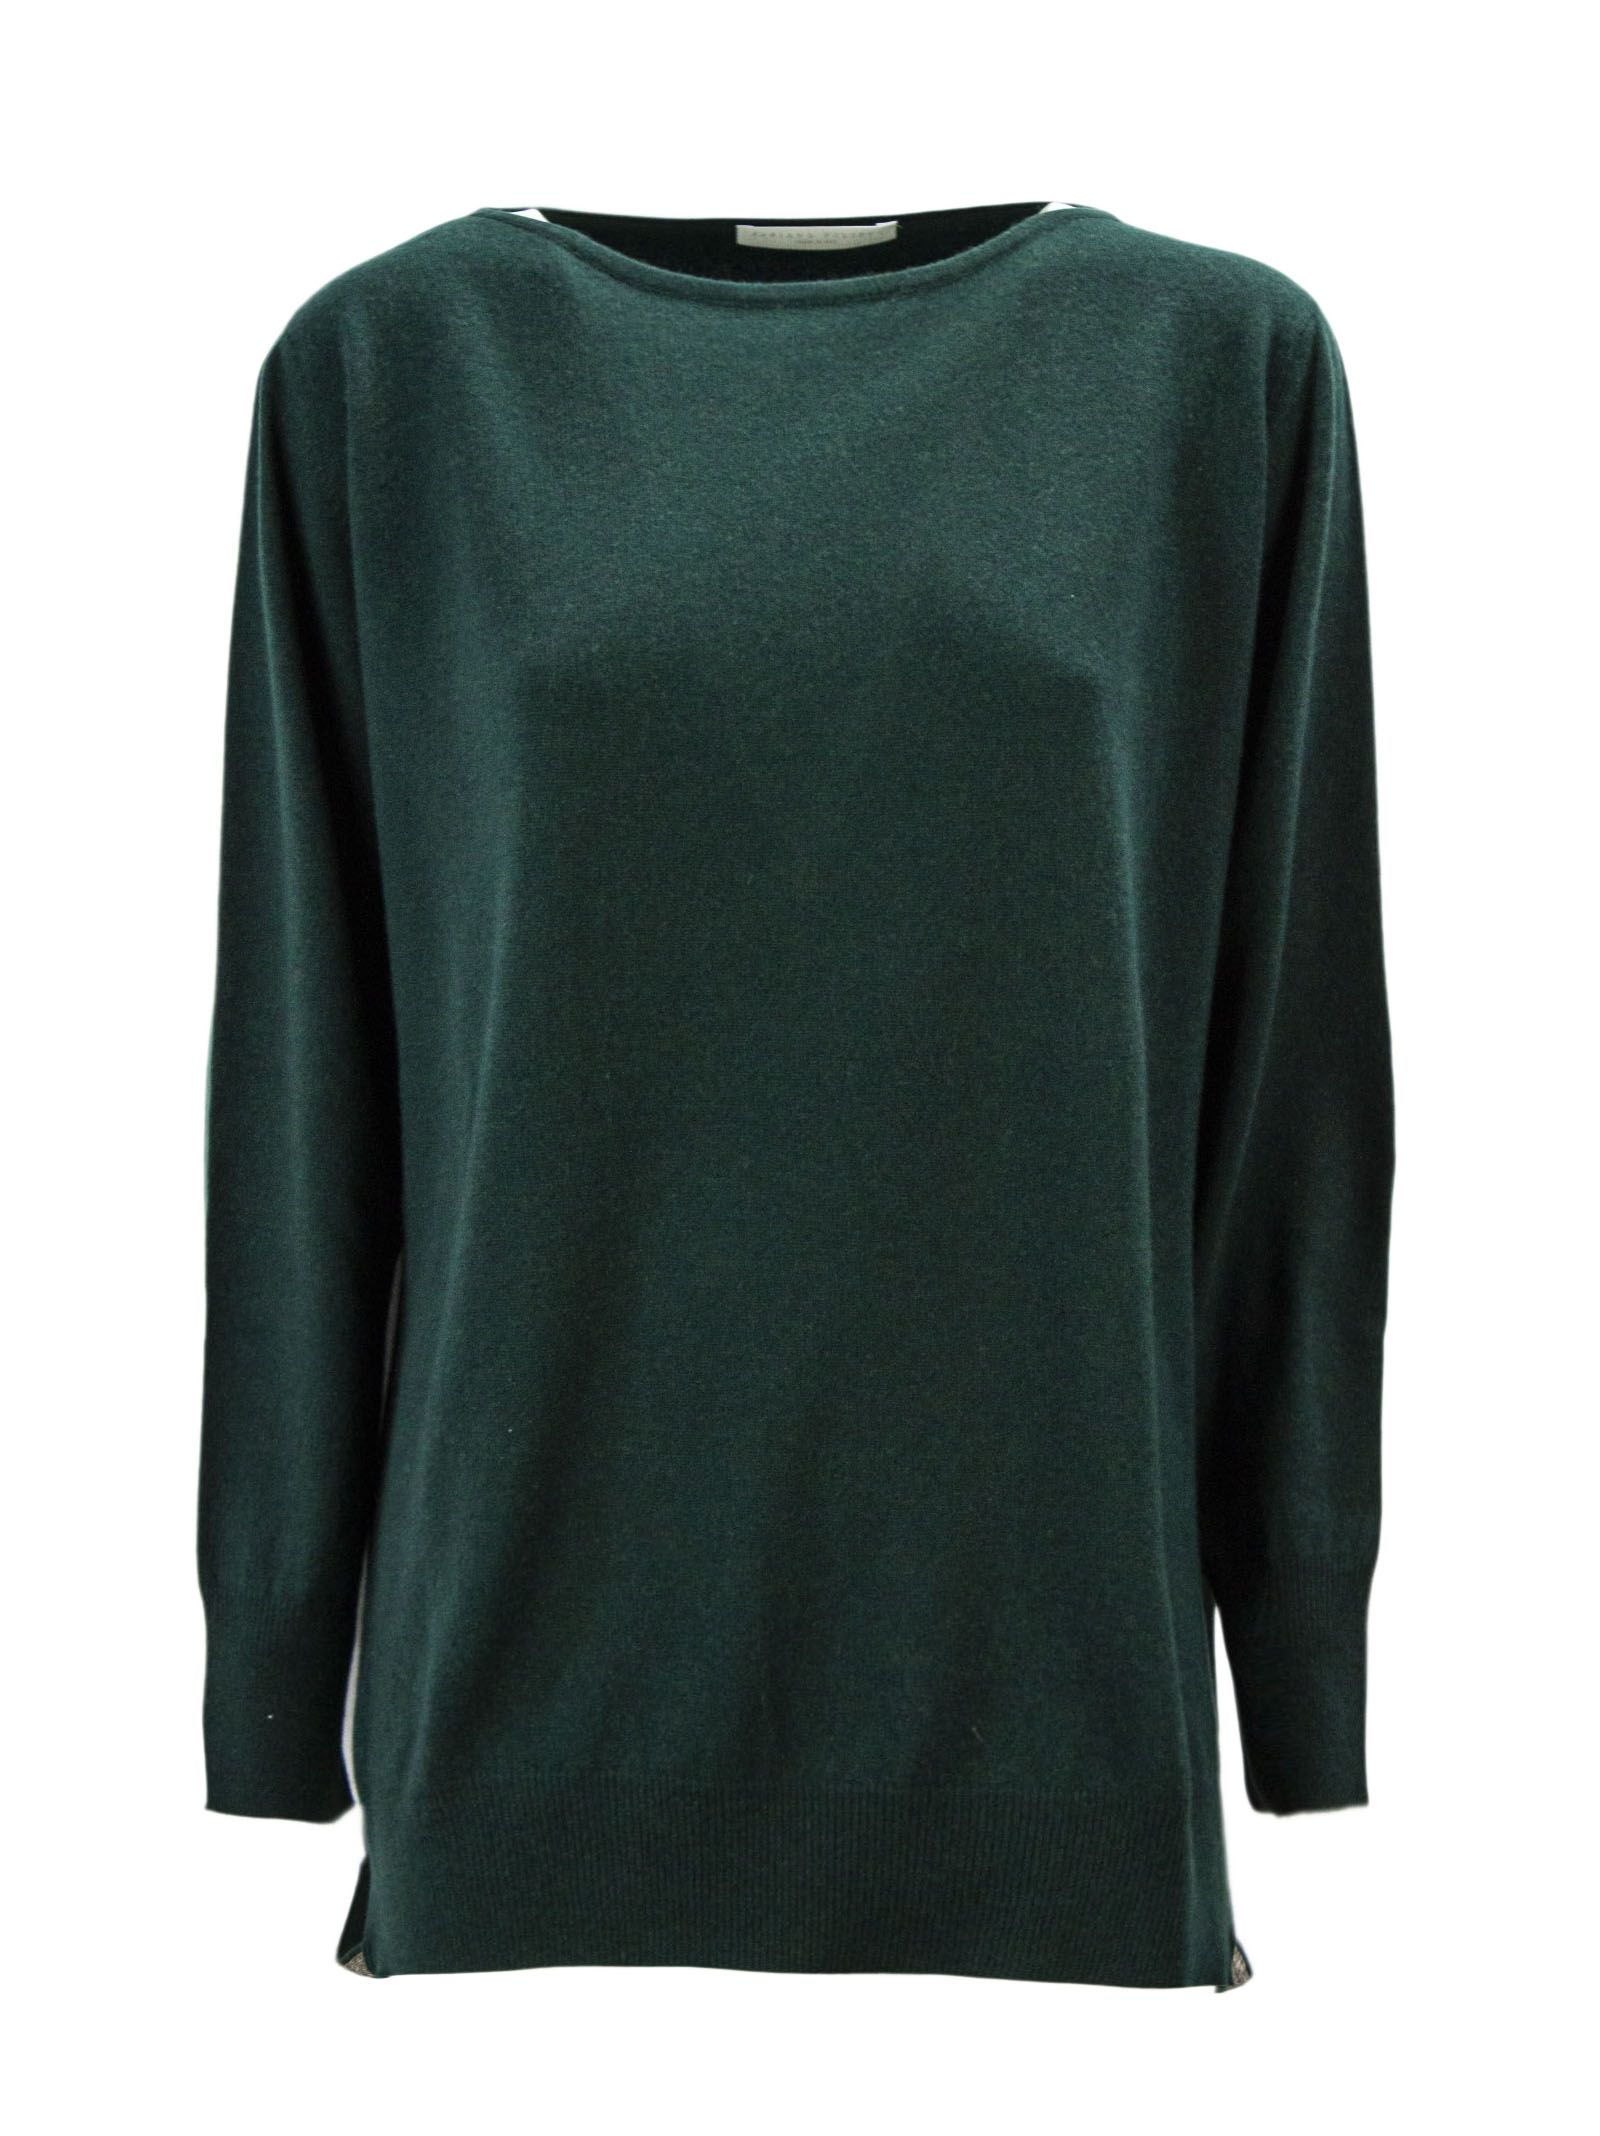 Fabiana Filippi Green Merino Wool Blend Jumper.